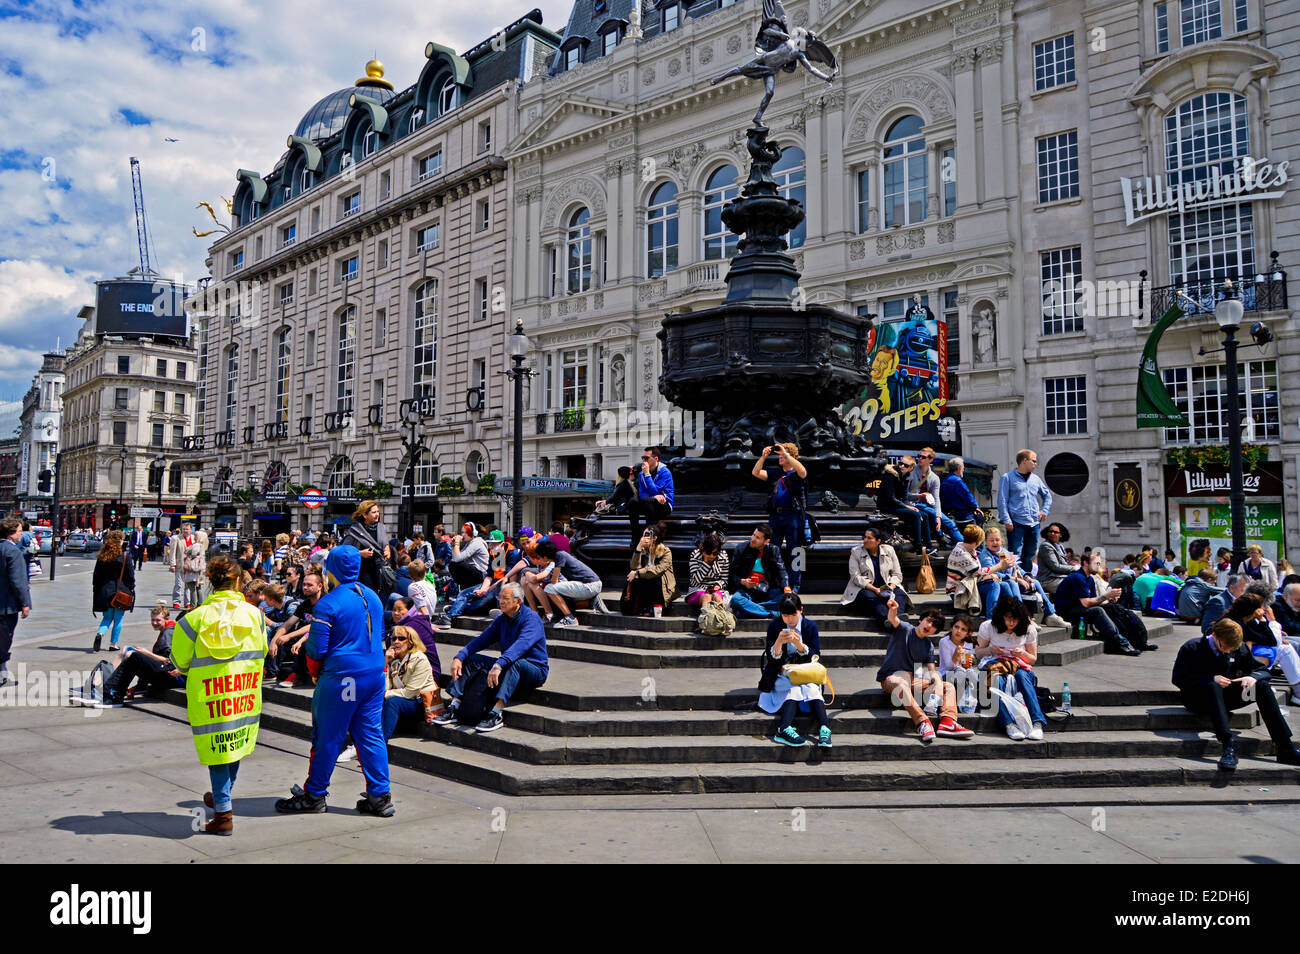 View of Shaftesbury Memorial and the Statue of Eros, Piccadilly Circus, West End, London, England, United Kingdom - Stock Image